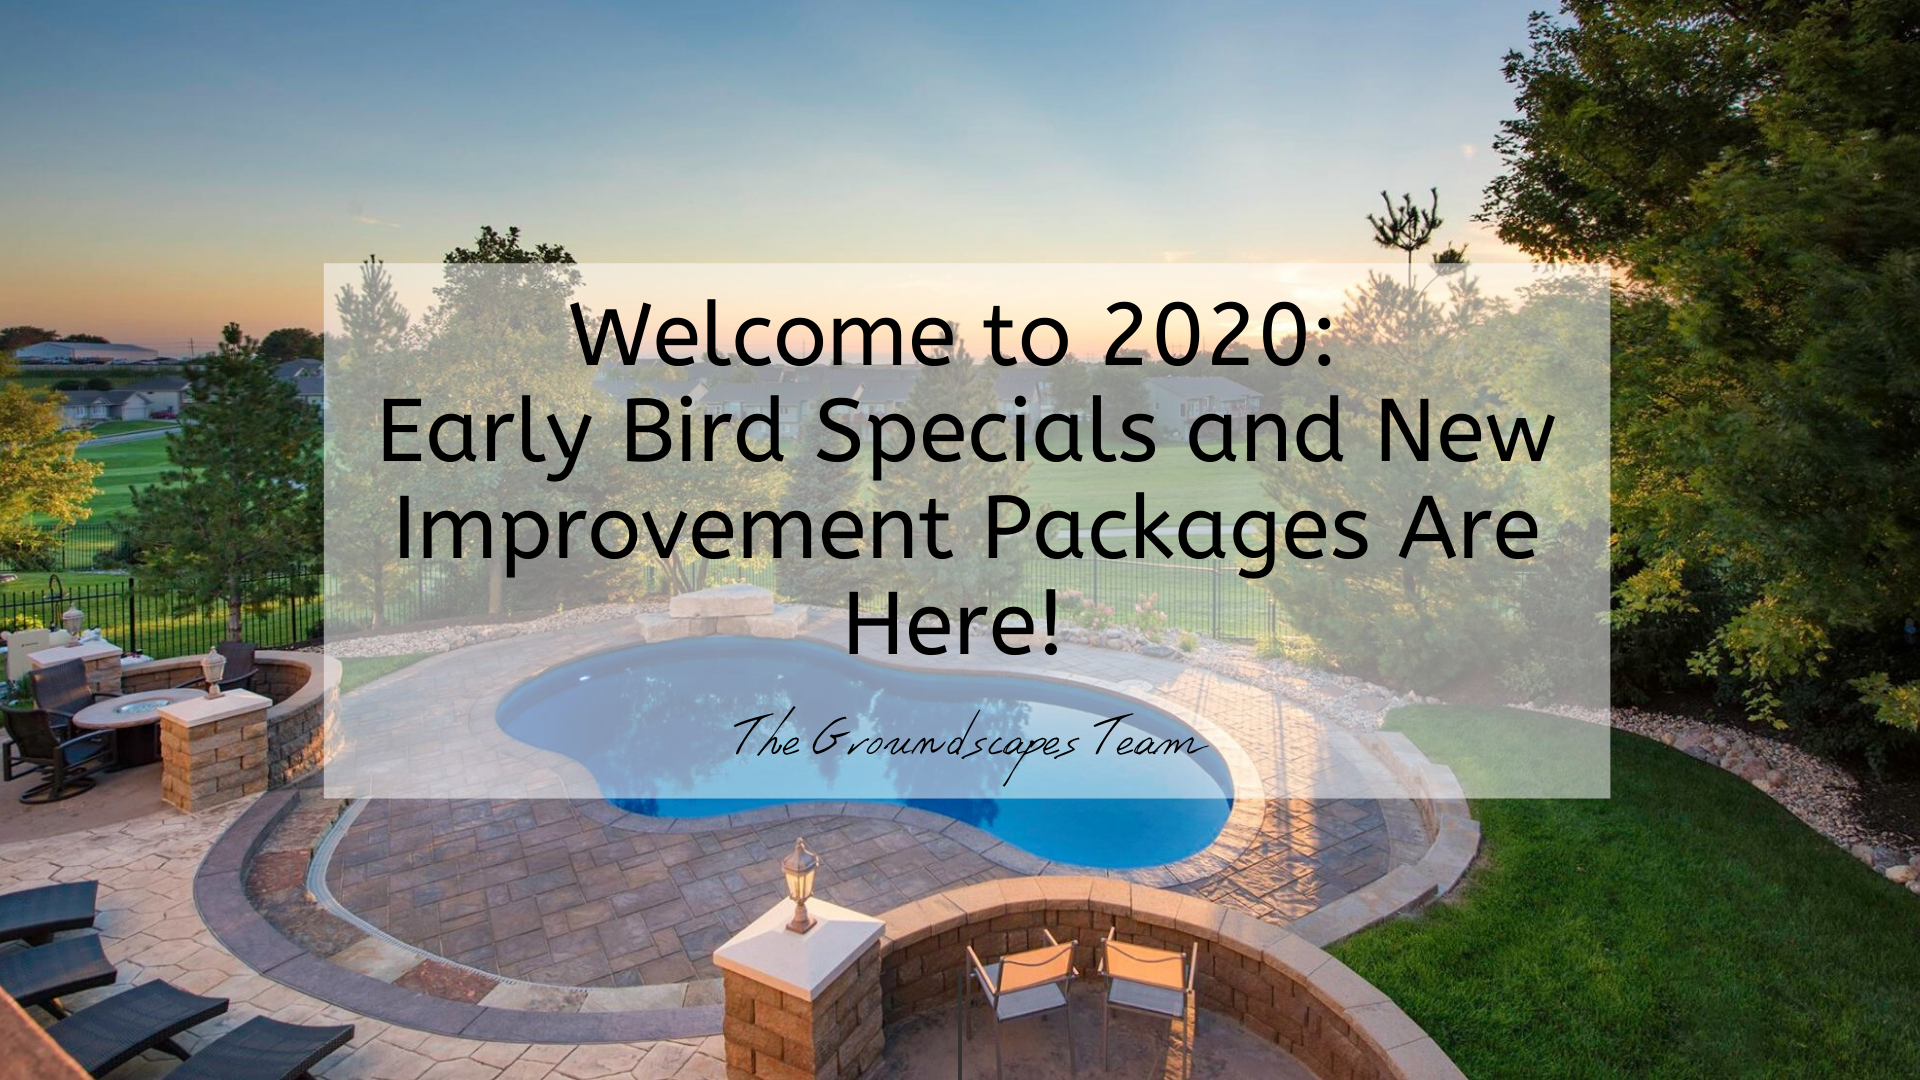 Welcome to 2020: Early Bird Specials and New Improvement Packages Are Here!